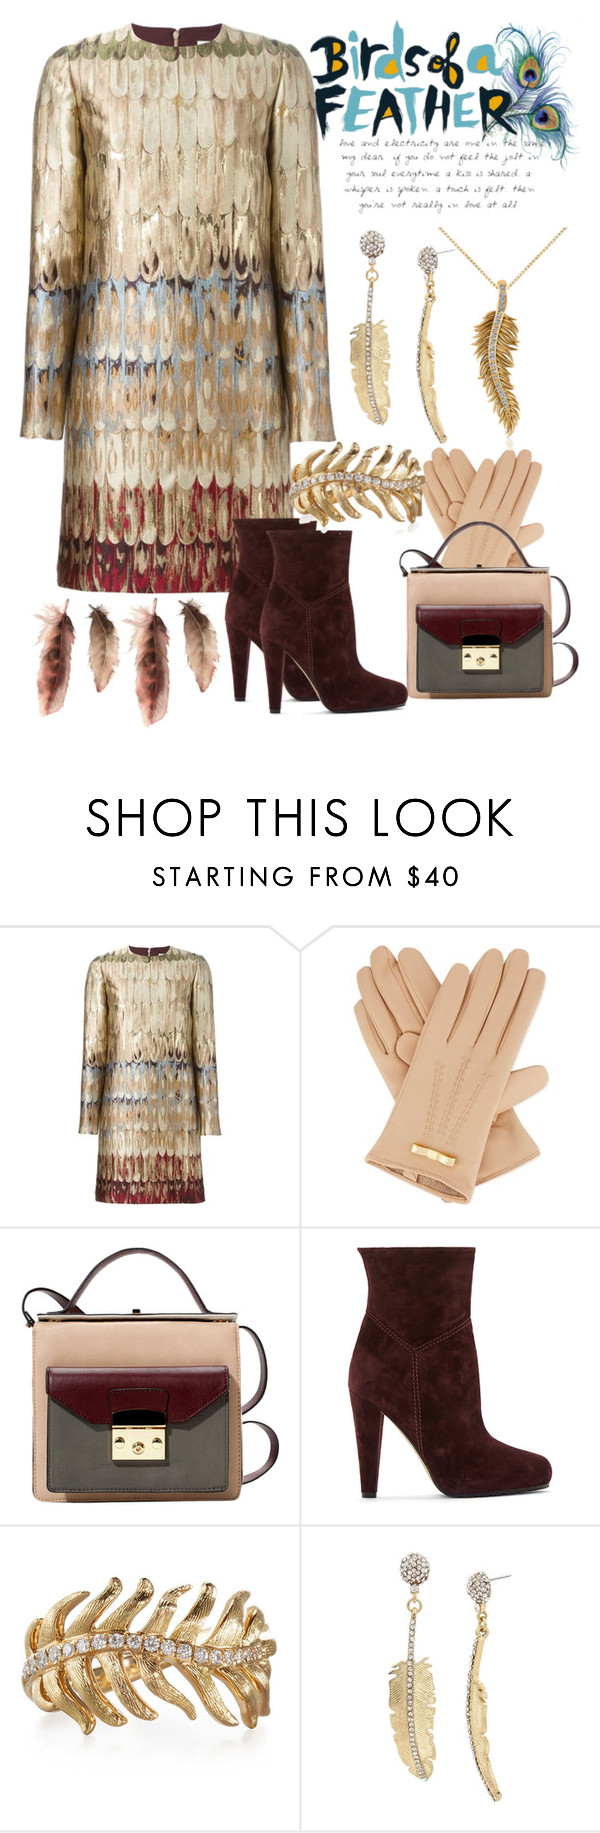 """""""Birds of a Feather...."""" by mdfletch ❤ liked on Polyvore featuring Valentino, Ted Baker, Brian Atwood, Mimi So, Betsey Johnson, Allurez and birdsofafeather"""